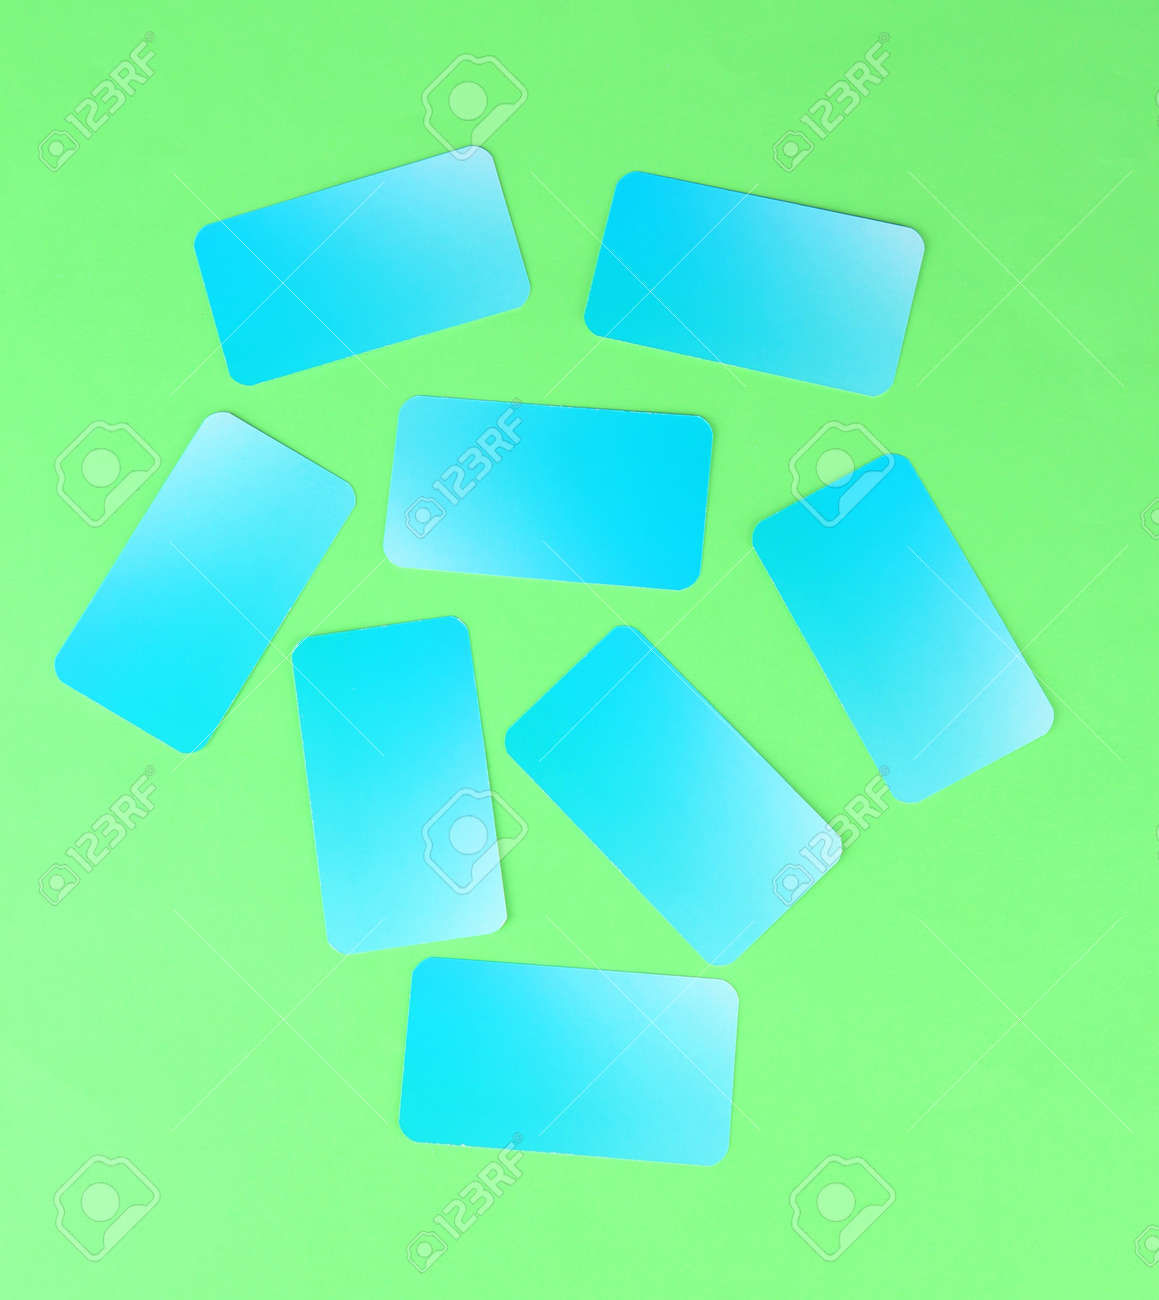 Business cards, on color background Stock Photo - 19041077